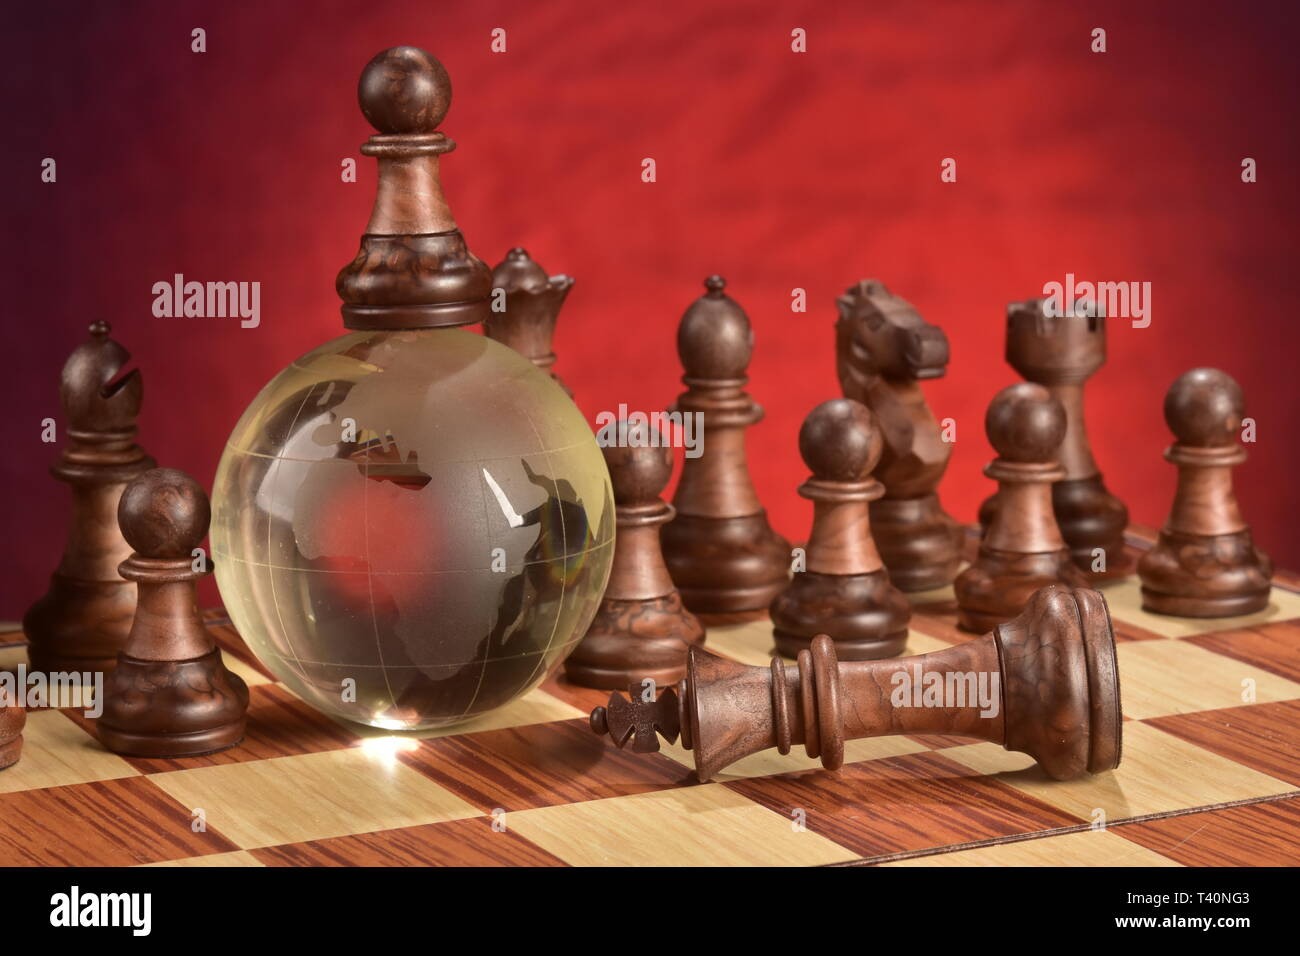 Chess game photo concept - Stock Image